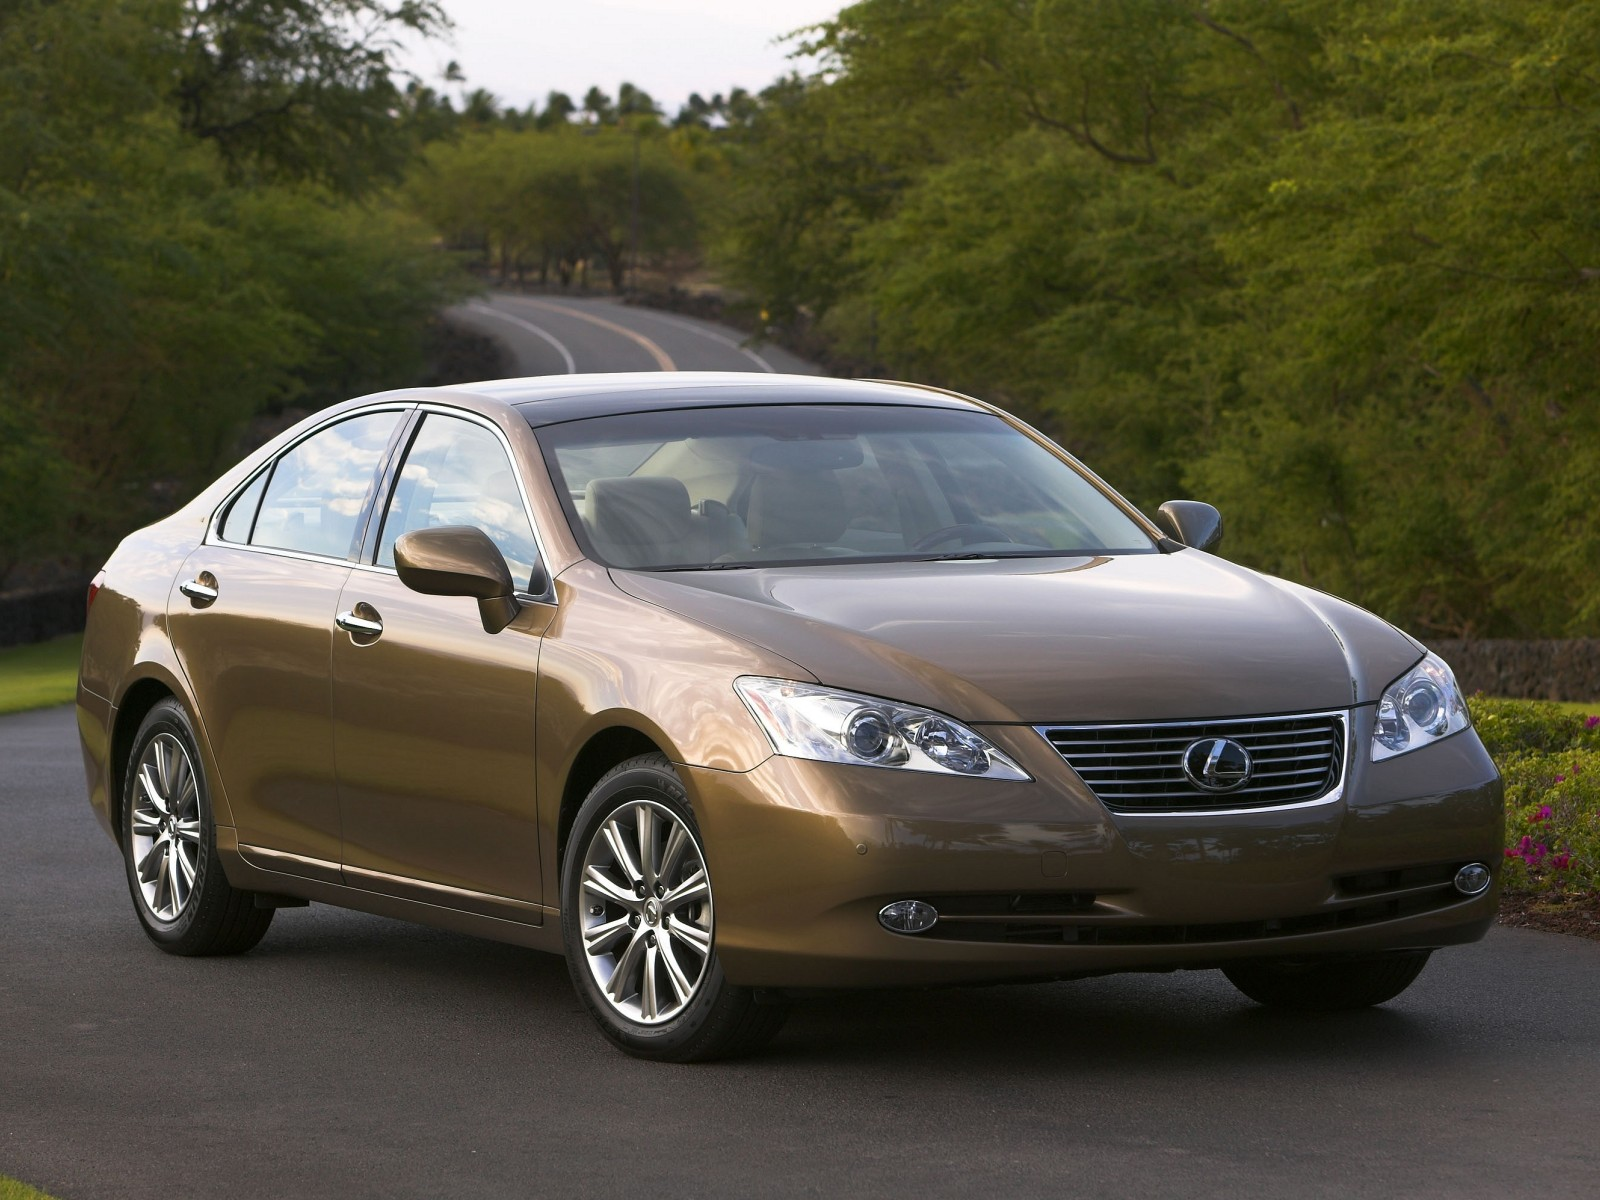 2009 lexus es 350 pictures information and specs auto. Black Bedroom Furniture Sets. Home Design Ideas